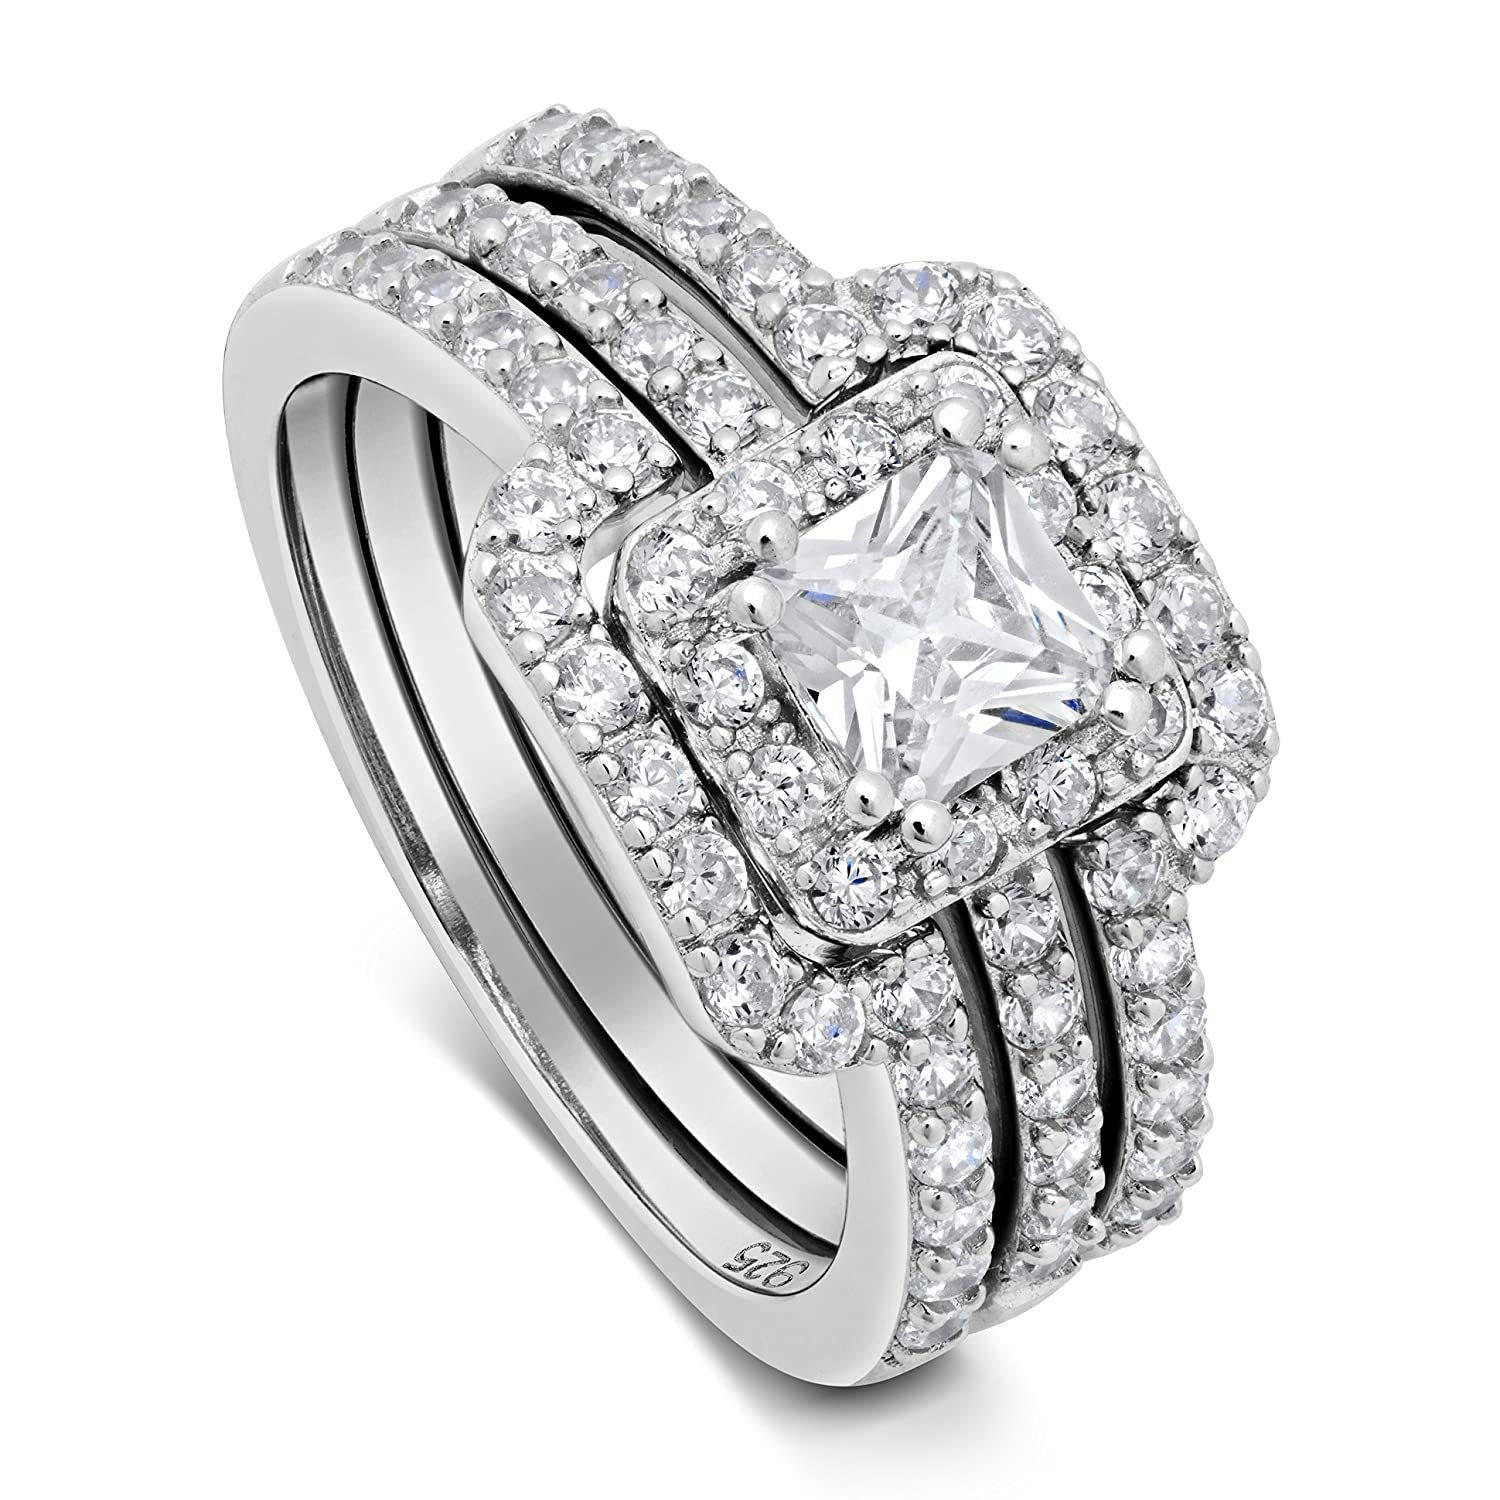 diamond women dp american and jewellery low online engagement silver amazon cz meenaz india girls prices in rings ring buy at for